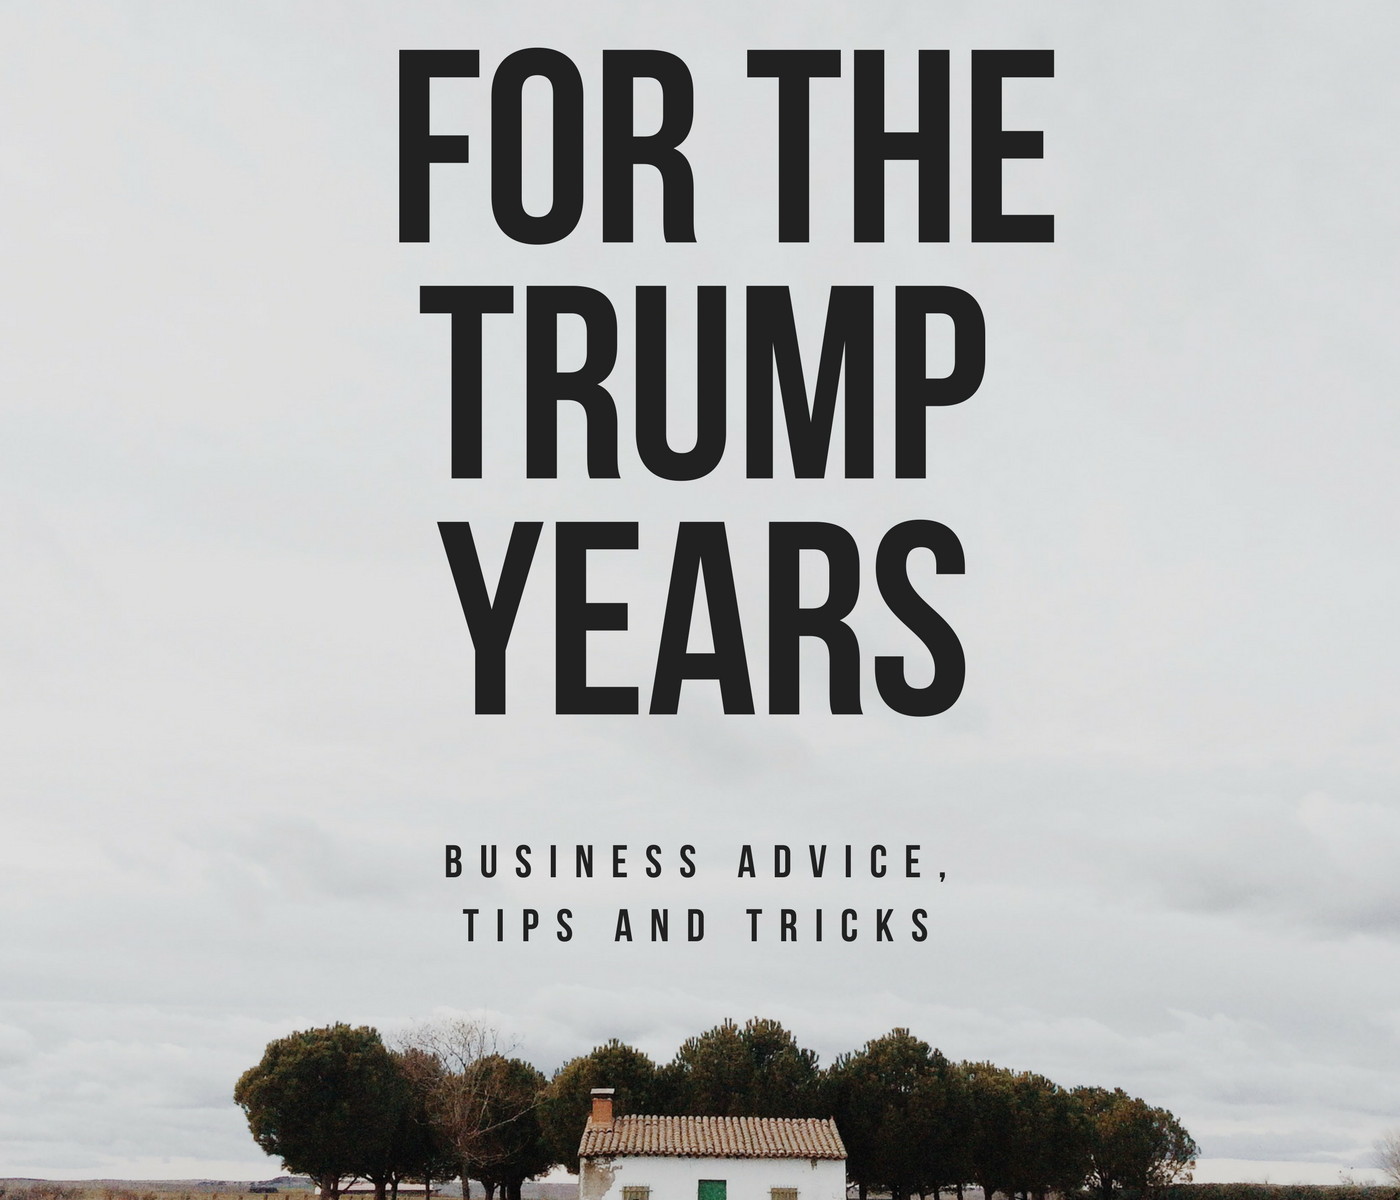 Business Advice, Tips and Tricks for the Trump Years